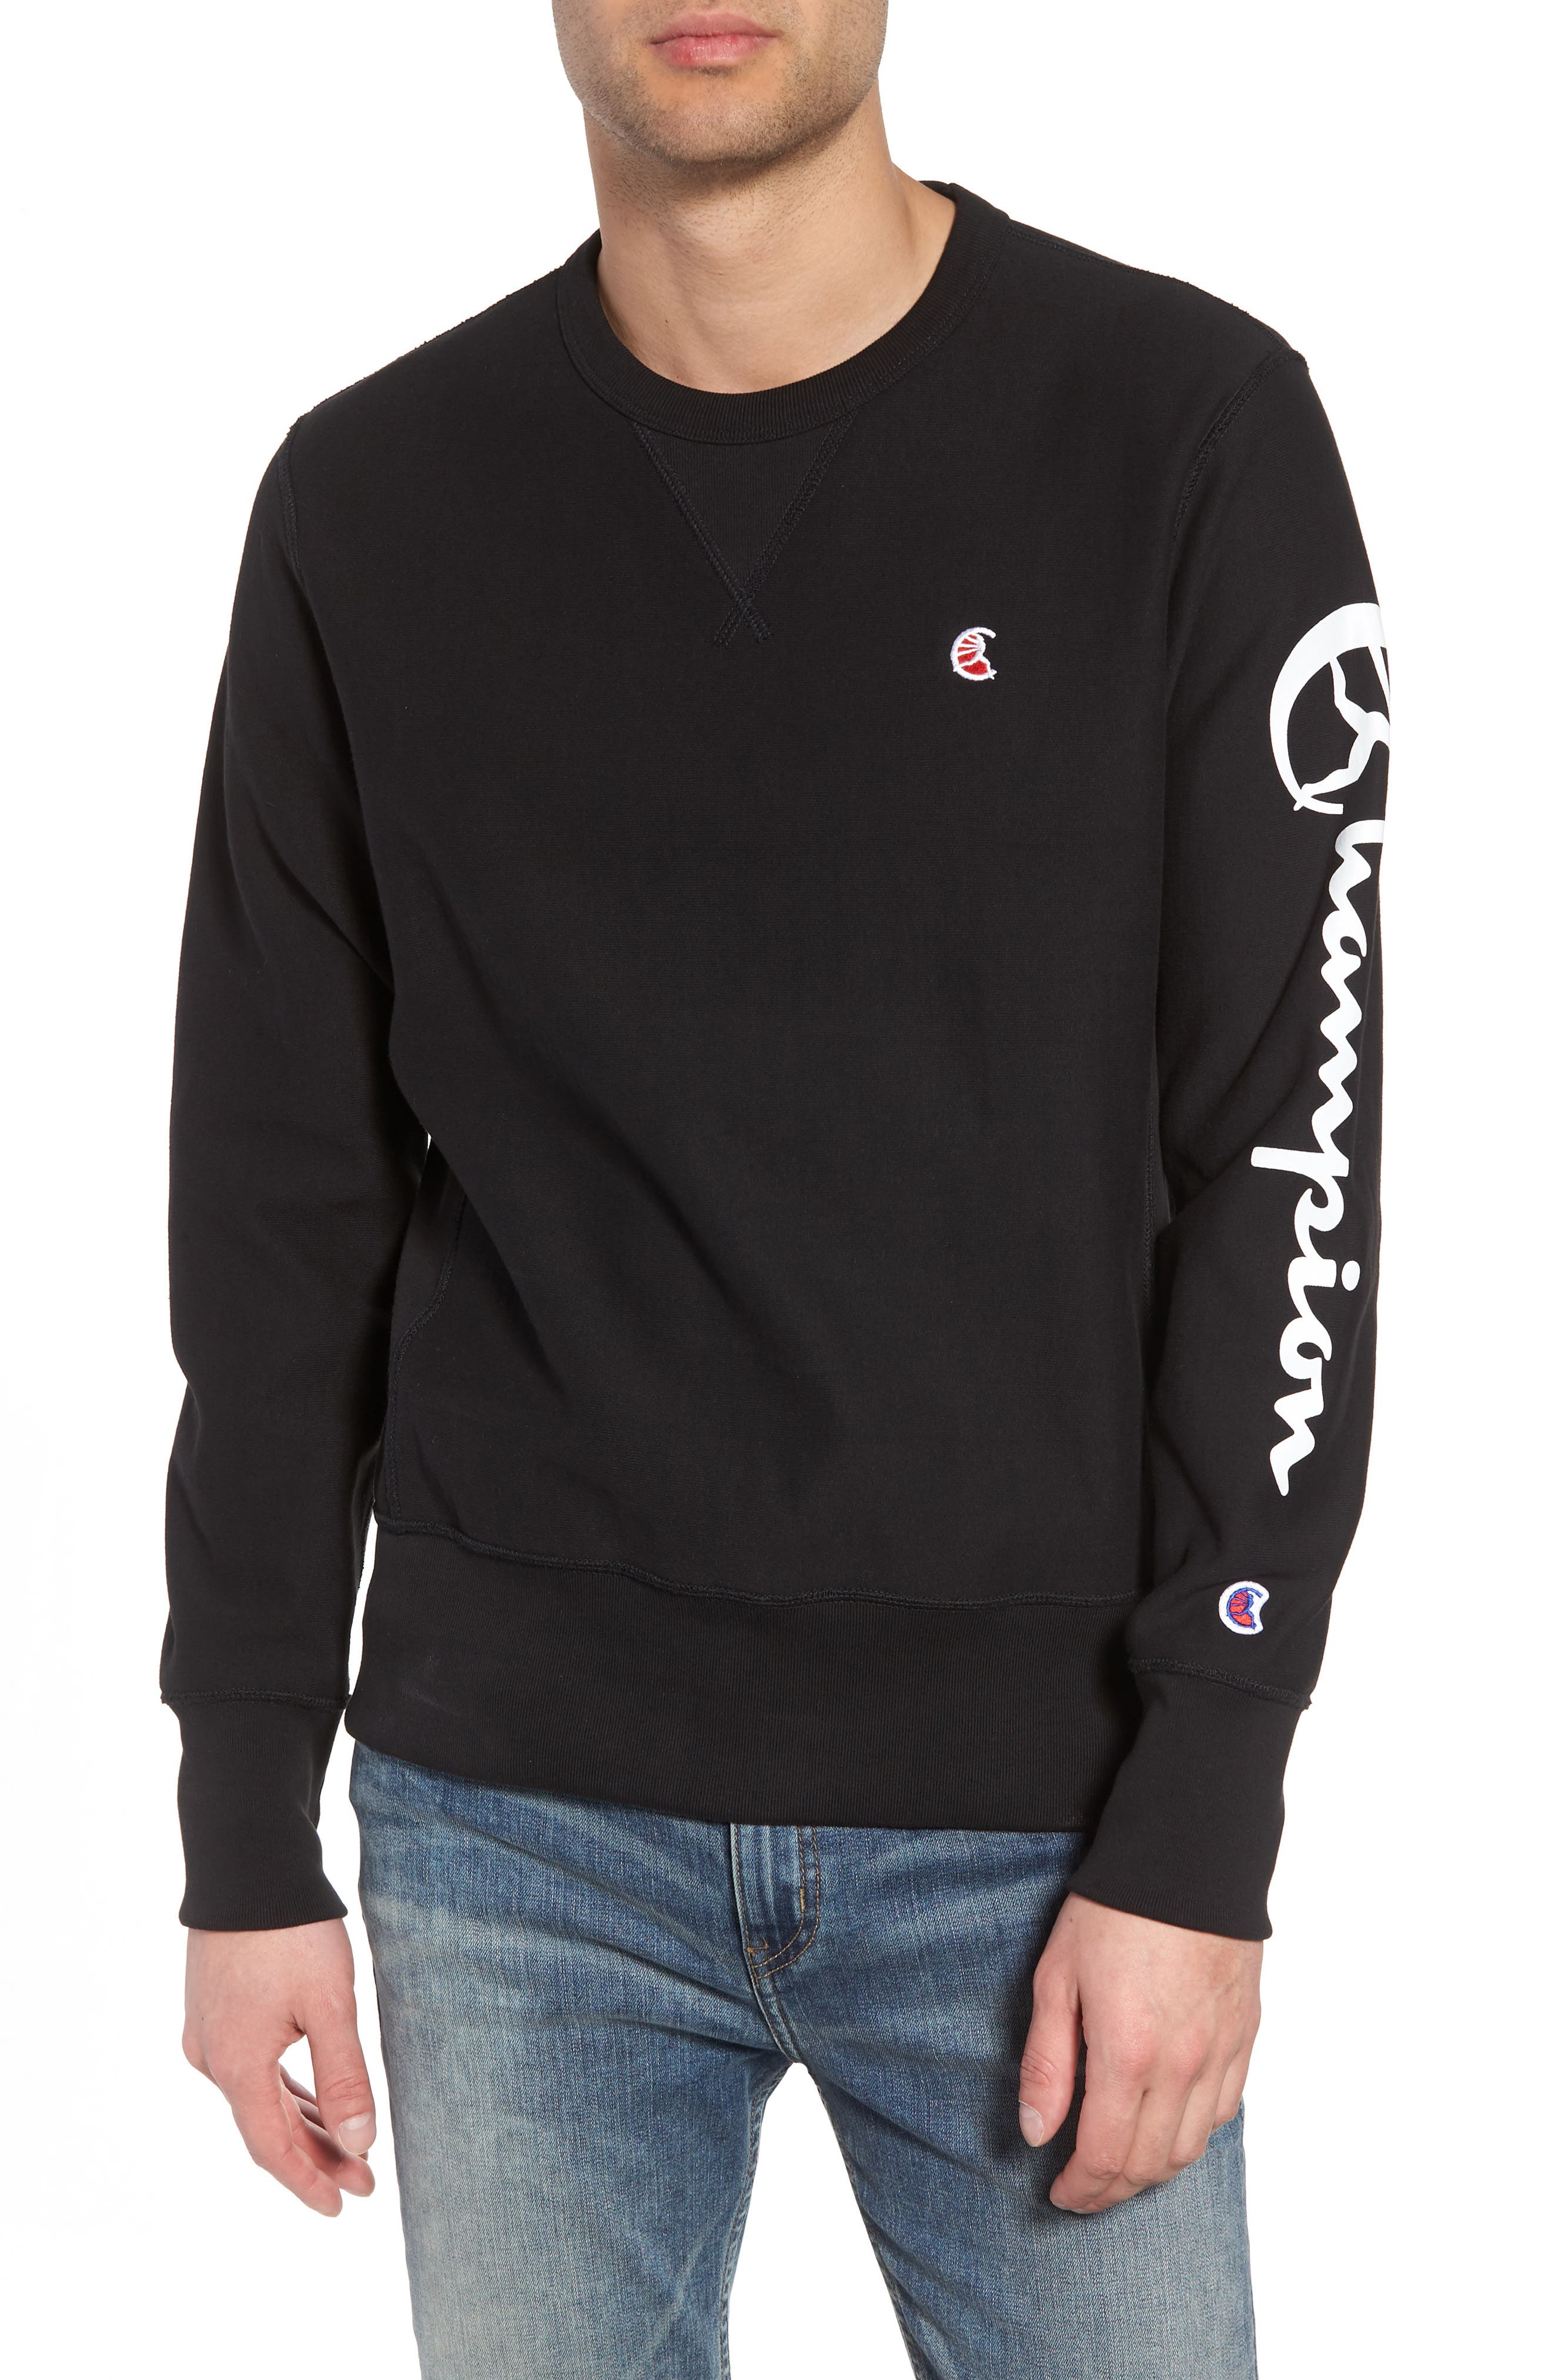 Todd Snyder + Champion Graphic Sleeve Sweatshirt